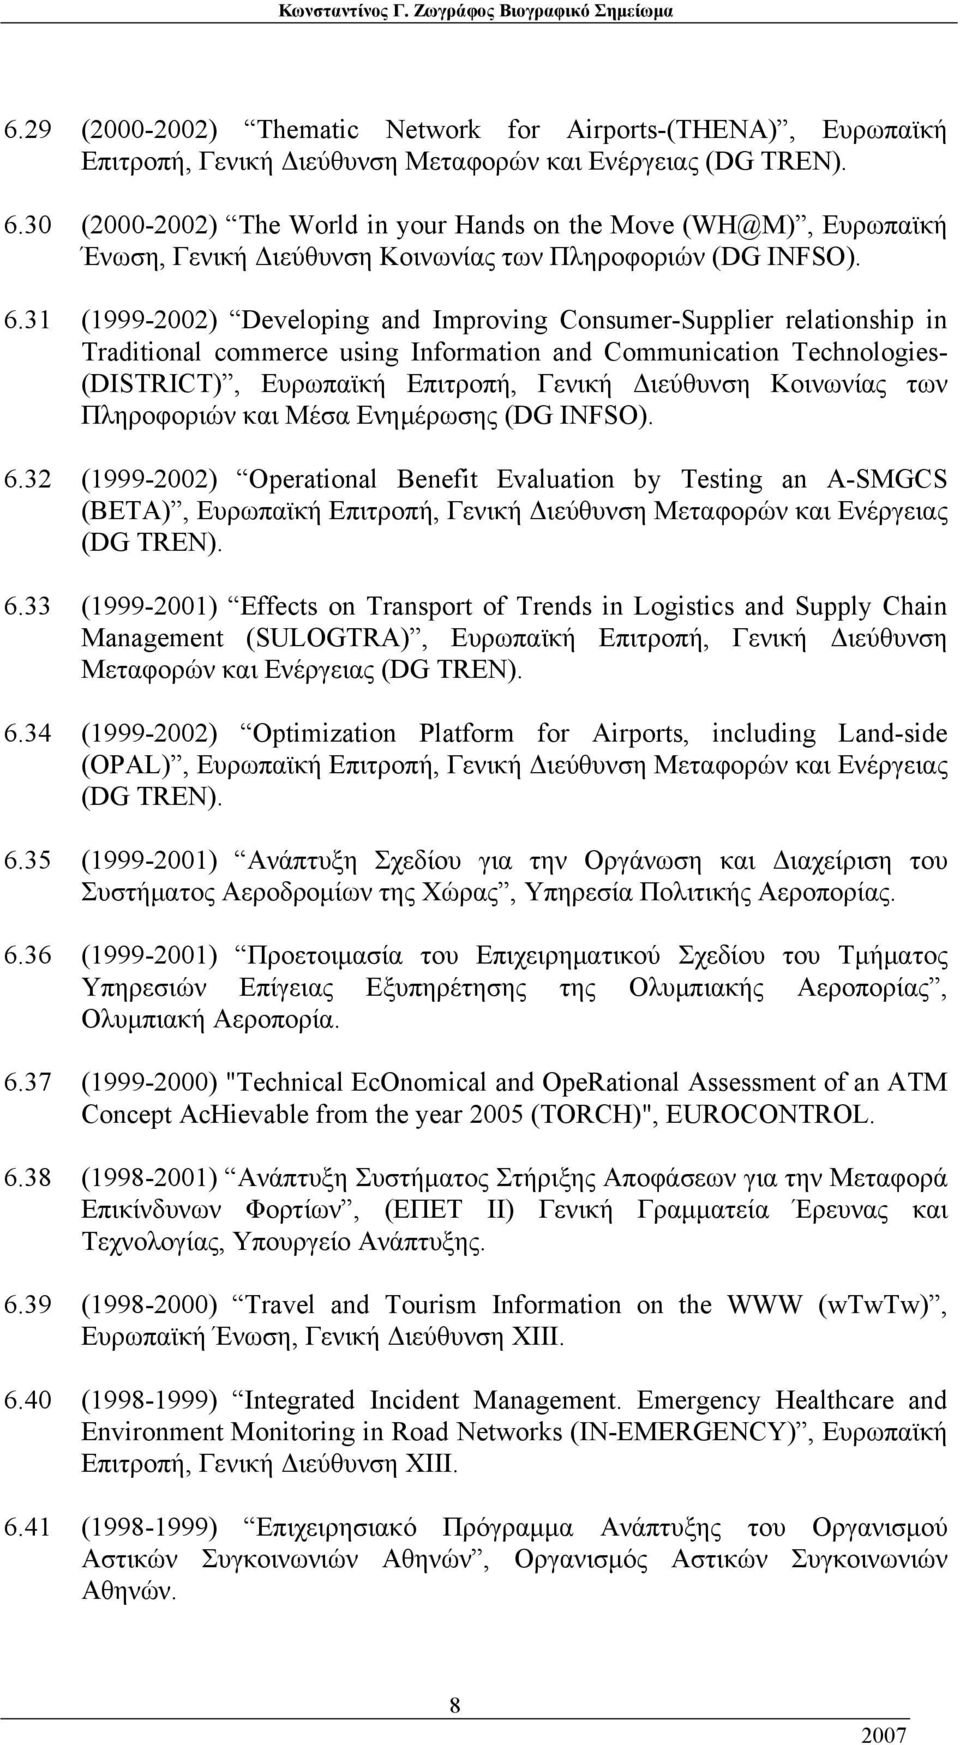 31 (1999-2002) Developing and Improving Consumer-Supplier relationship in Traditional commerce using Information and Communication Technologies- (DISTRICT), Ευρωπαϊκή Επιτροπή, Γενική Διεύθυνση